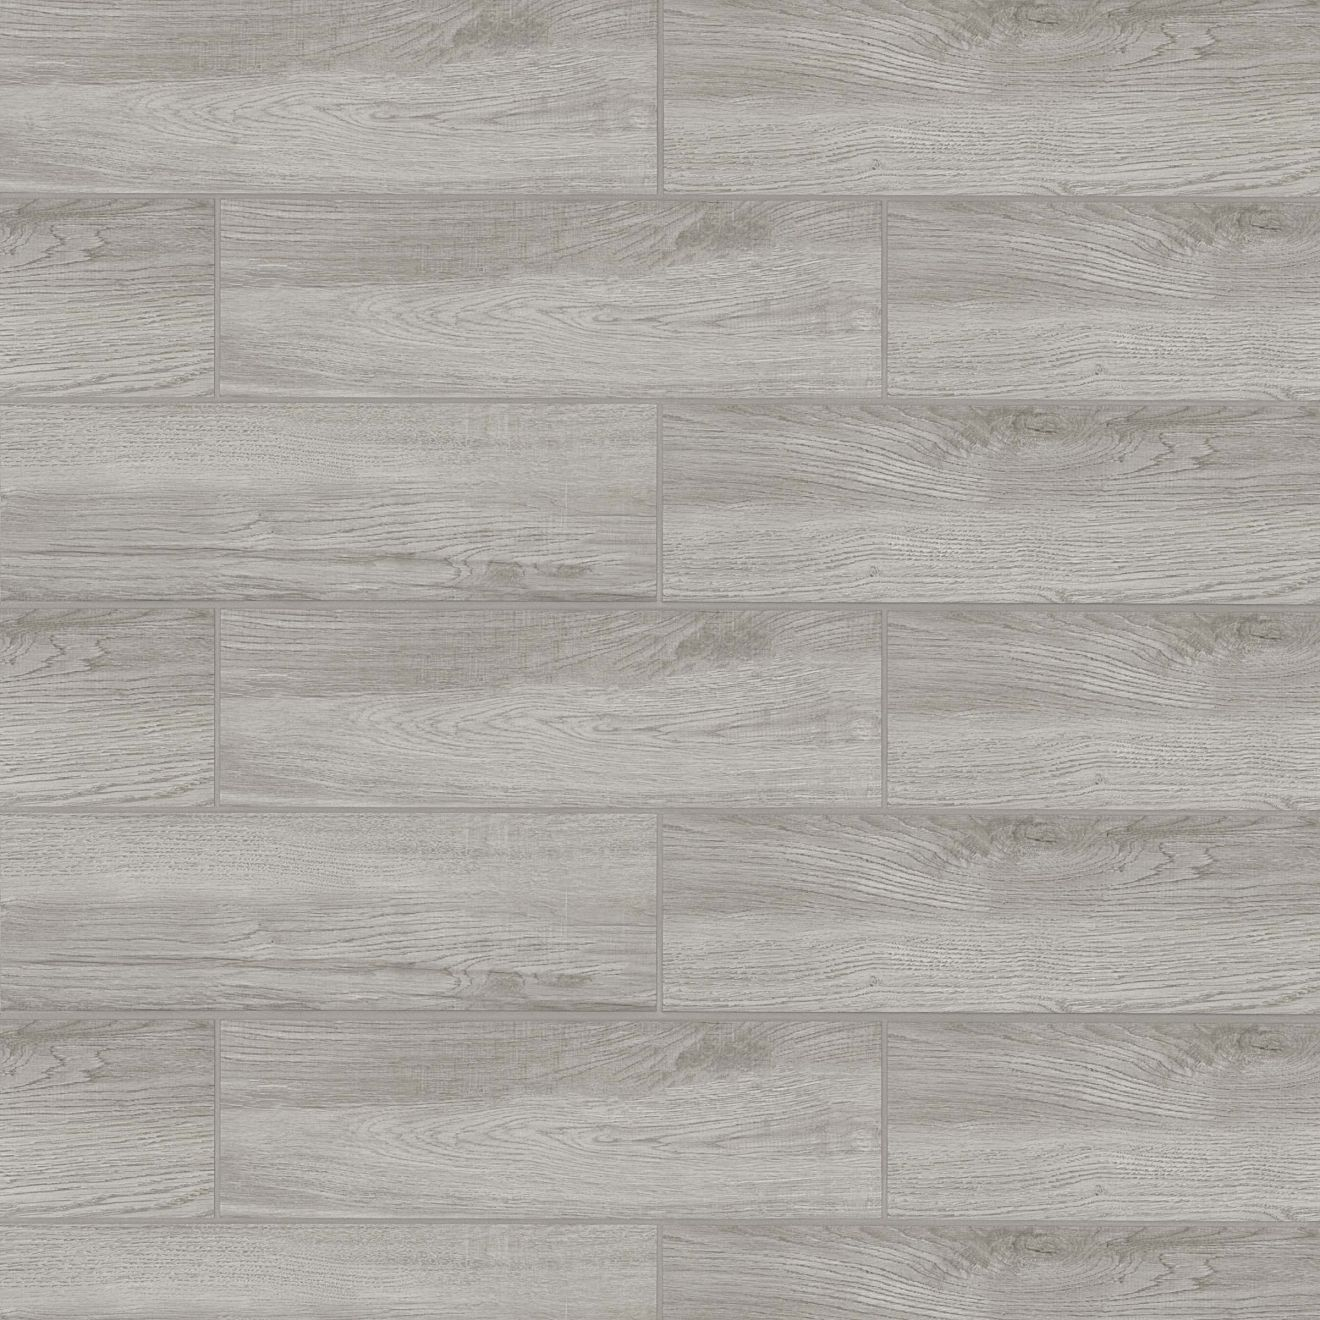 "Balboa 7"" x 24"" Floor & Wall Tile in Grey"